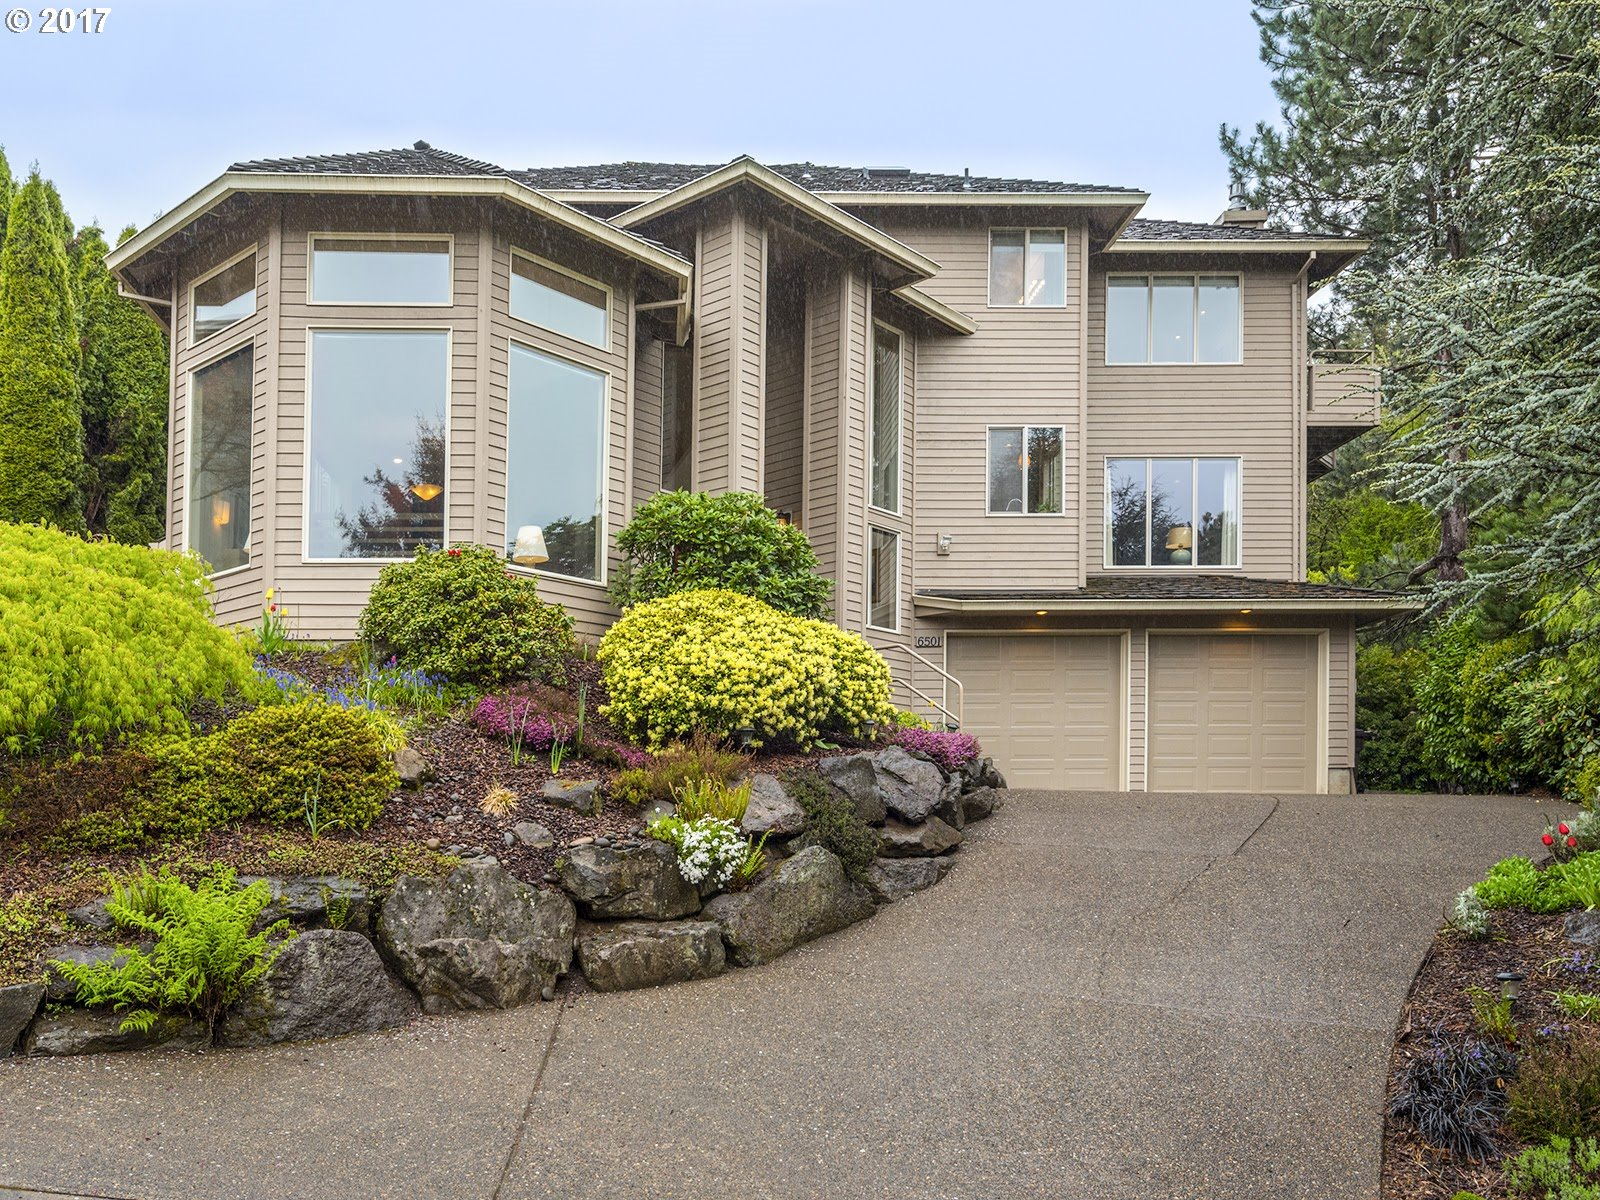 6501 HORTON RD, West Linn OR 97068